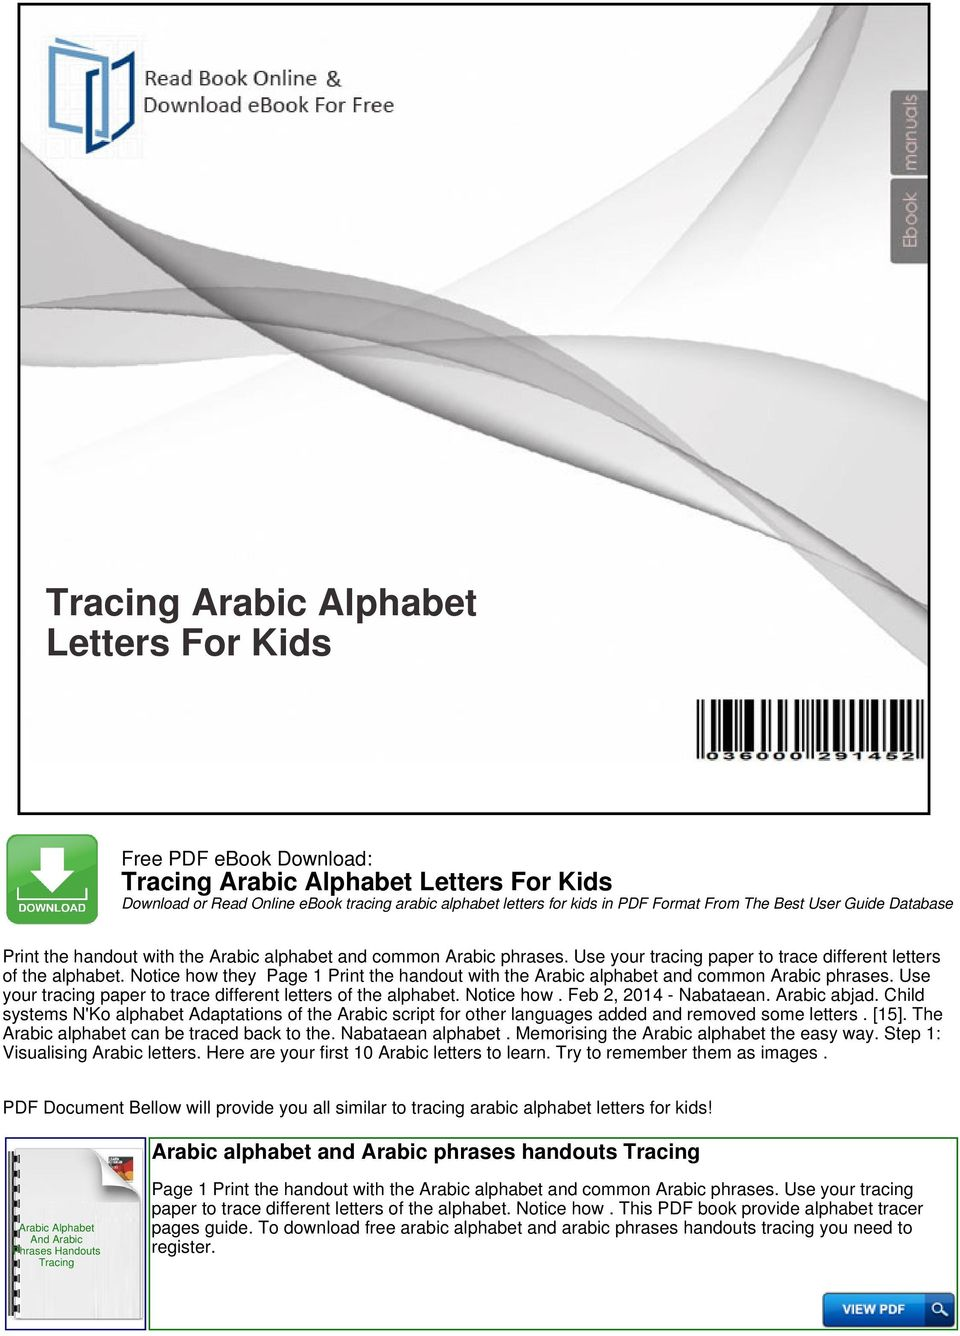 tracing arabic alphabet letters for kids pdf